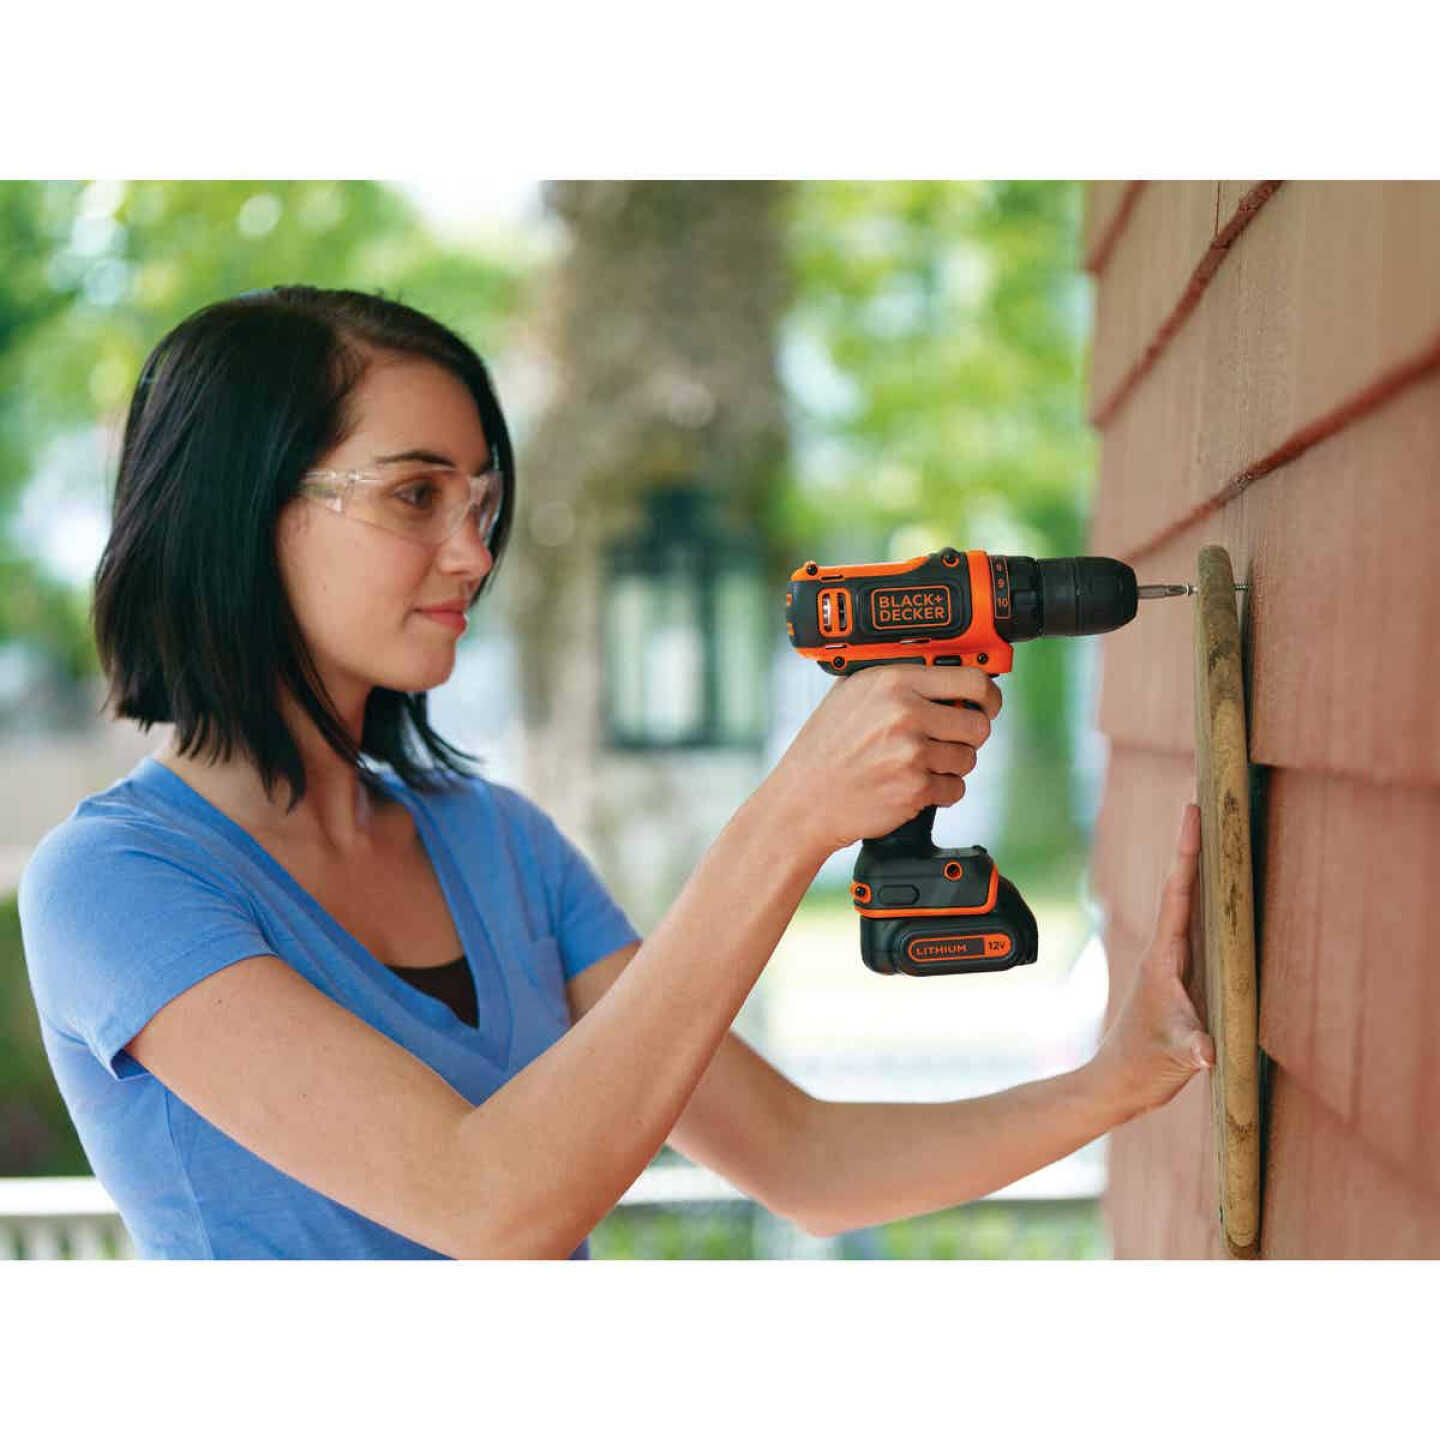 Black & Decker 12 Volt MAX Lithium-Ion 3/8 In. Cordless Drill Kit Image 3